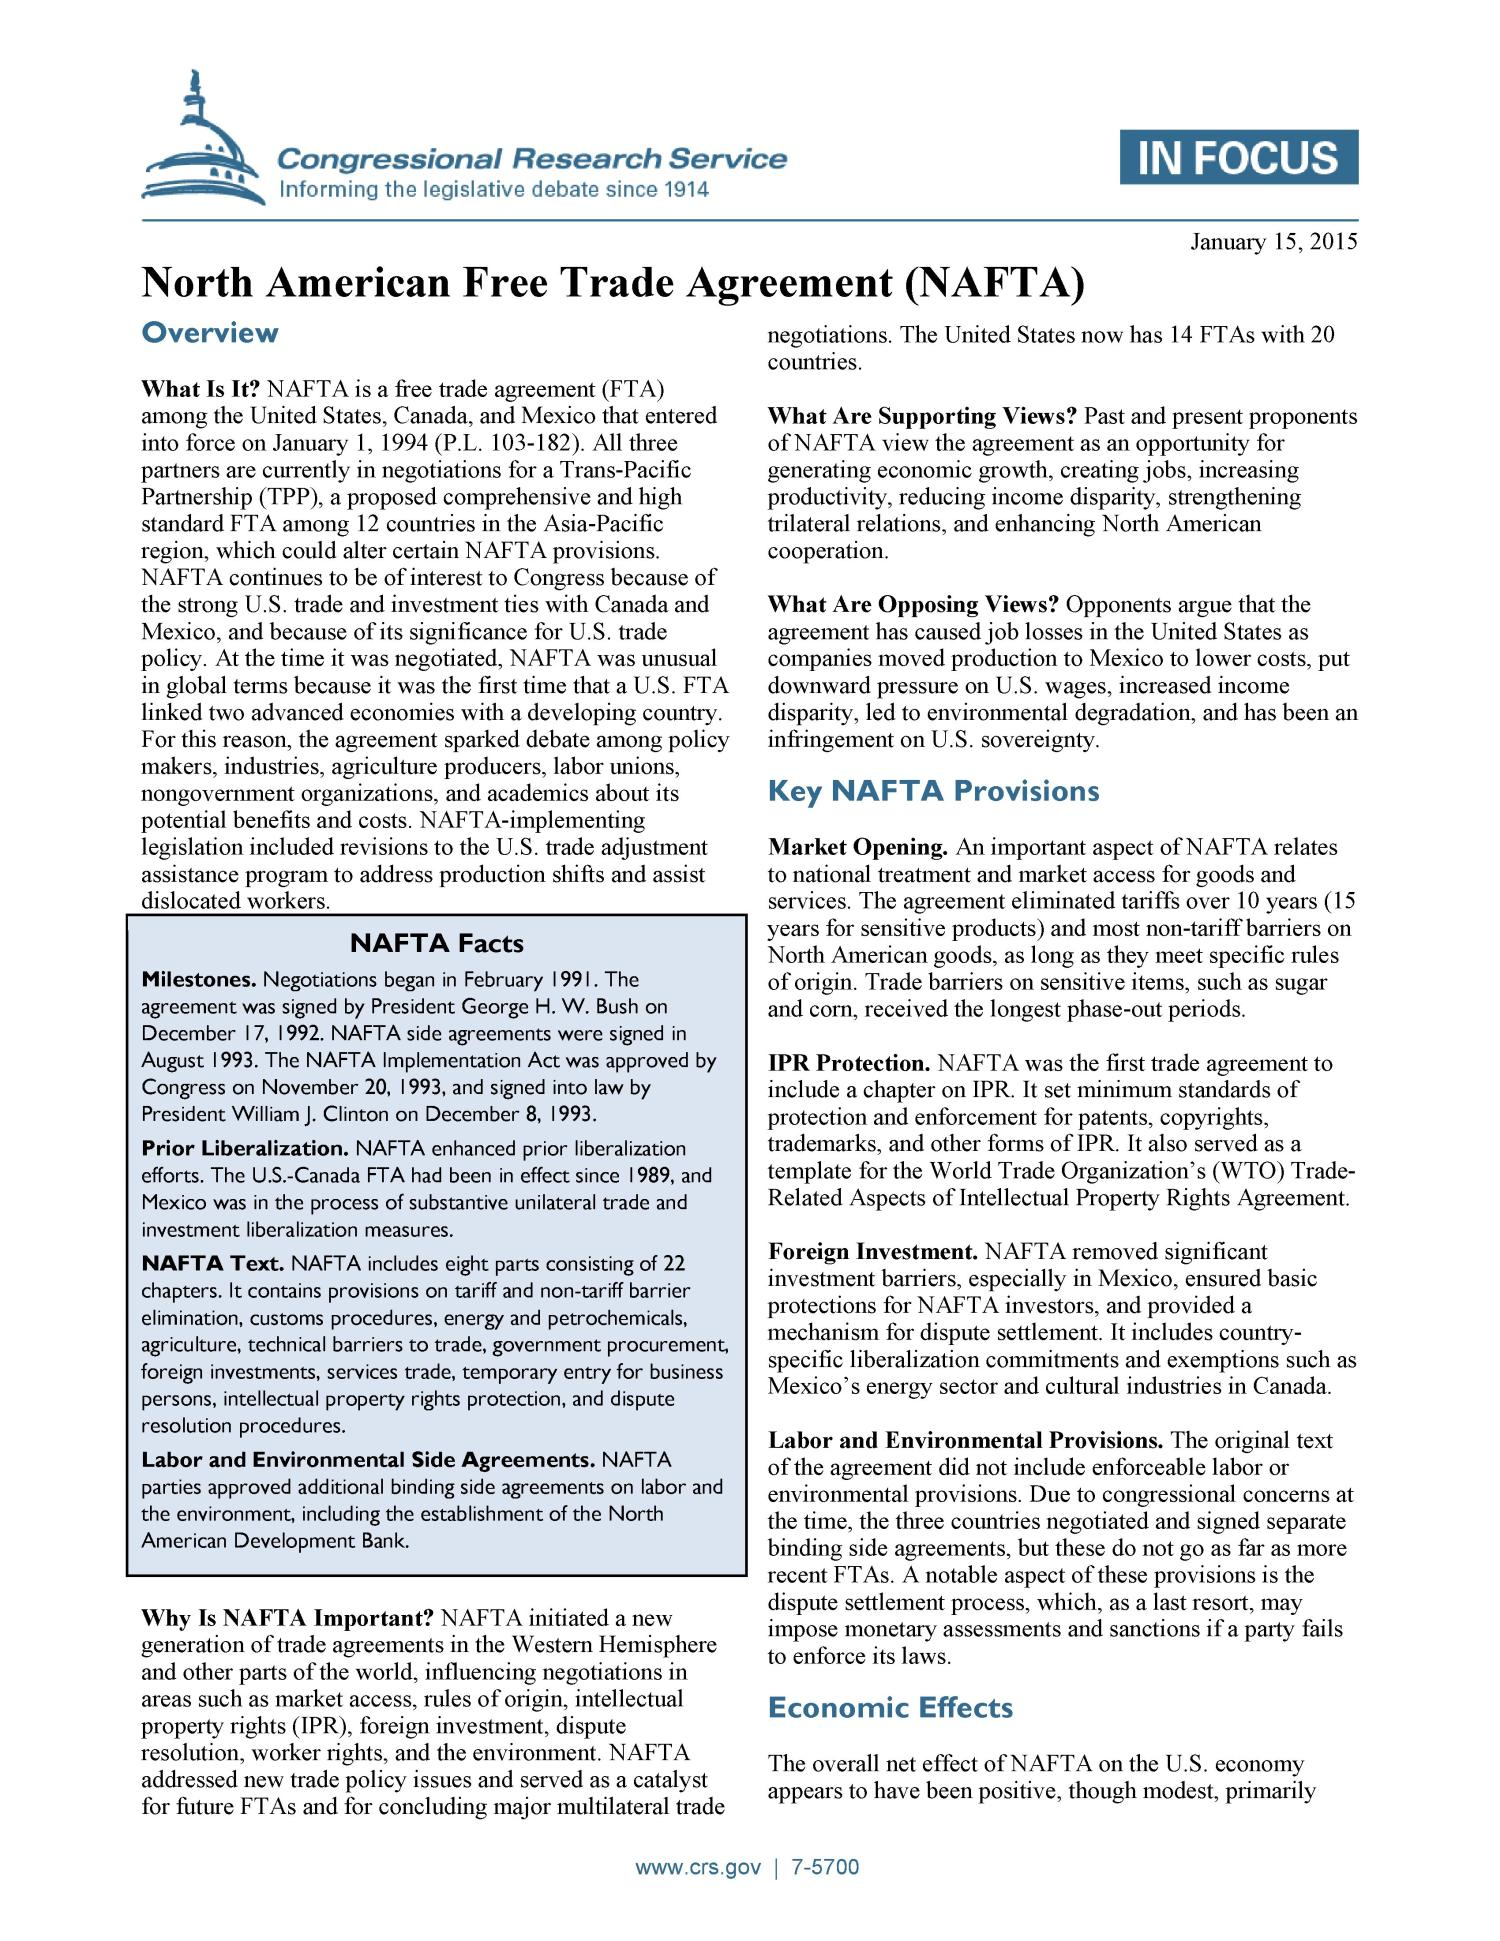 the objectives and impact of the north american free trade agreement nafta The main goal of the north american free trade agreement (nafta) is to reduce barriers to trade and promote economic growth between canada, mexico and the united states negotiations between these three countries began in 1994.